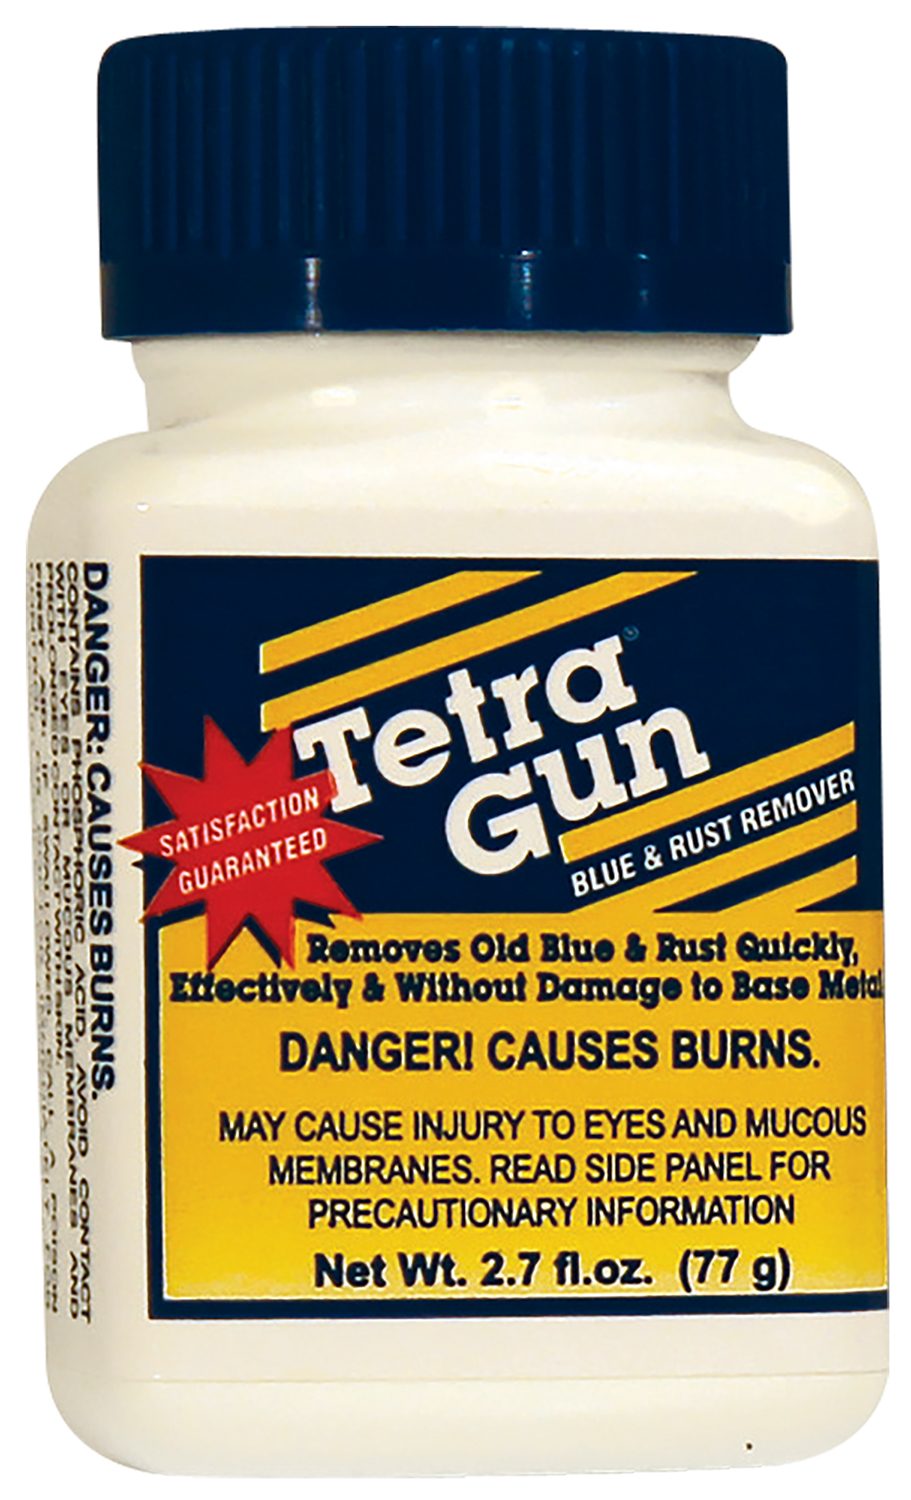 Tetra 001I Gun Blue Cleaner Blue & Rust Remover 2.7 oz